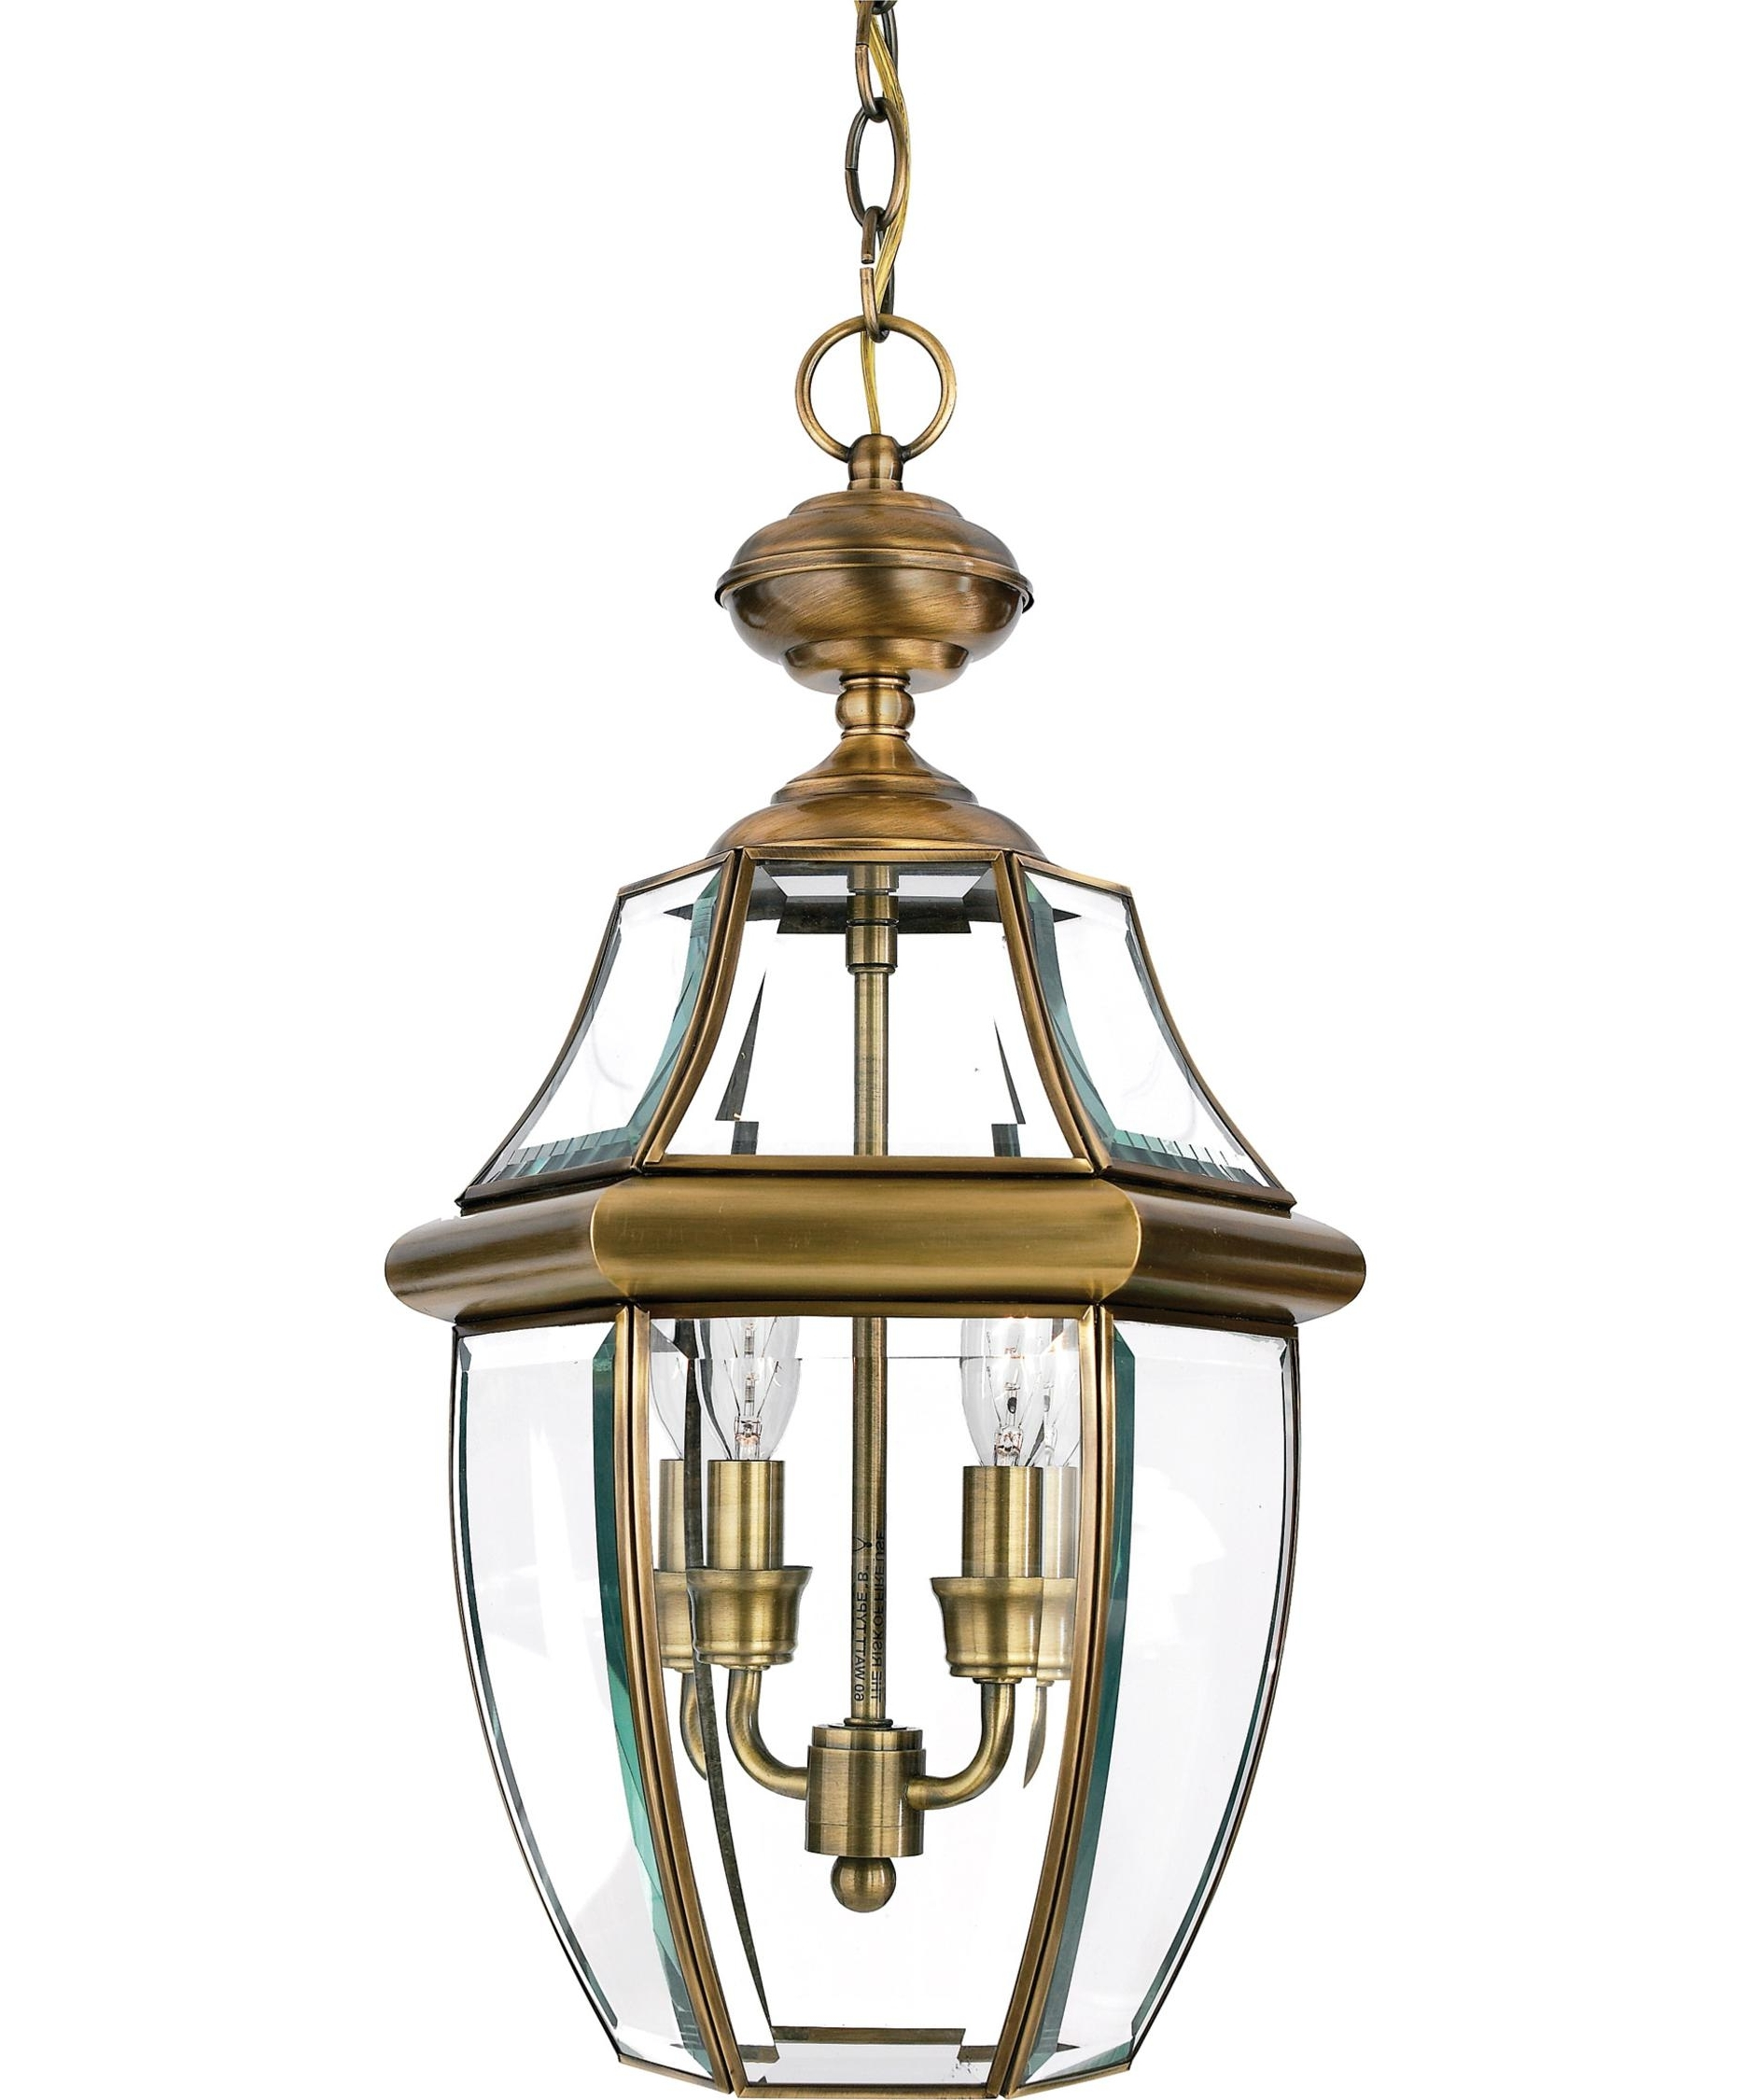 Outdoor Hanging Lights For Well Known Quoizel Ny1178 Newbury 10 Inch Wide 2 Light Outdoor Hanging Lantern (View 12 of 20)